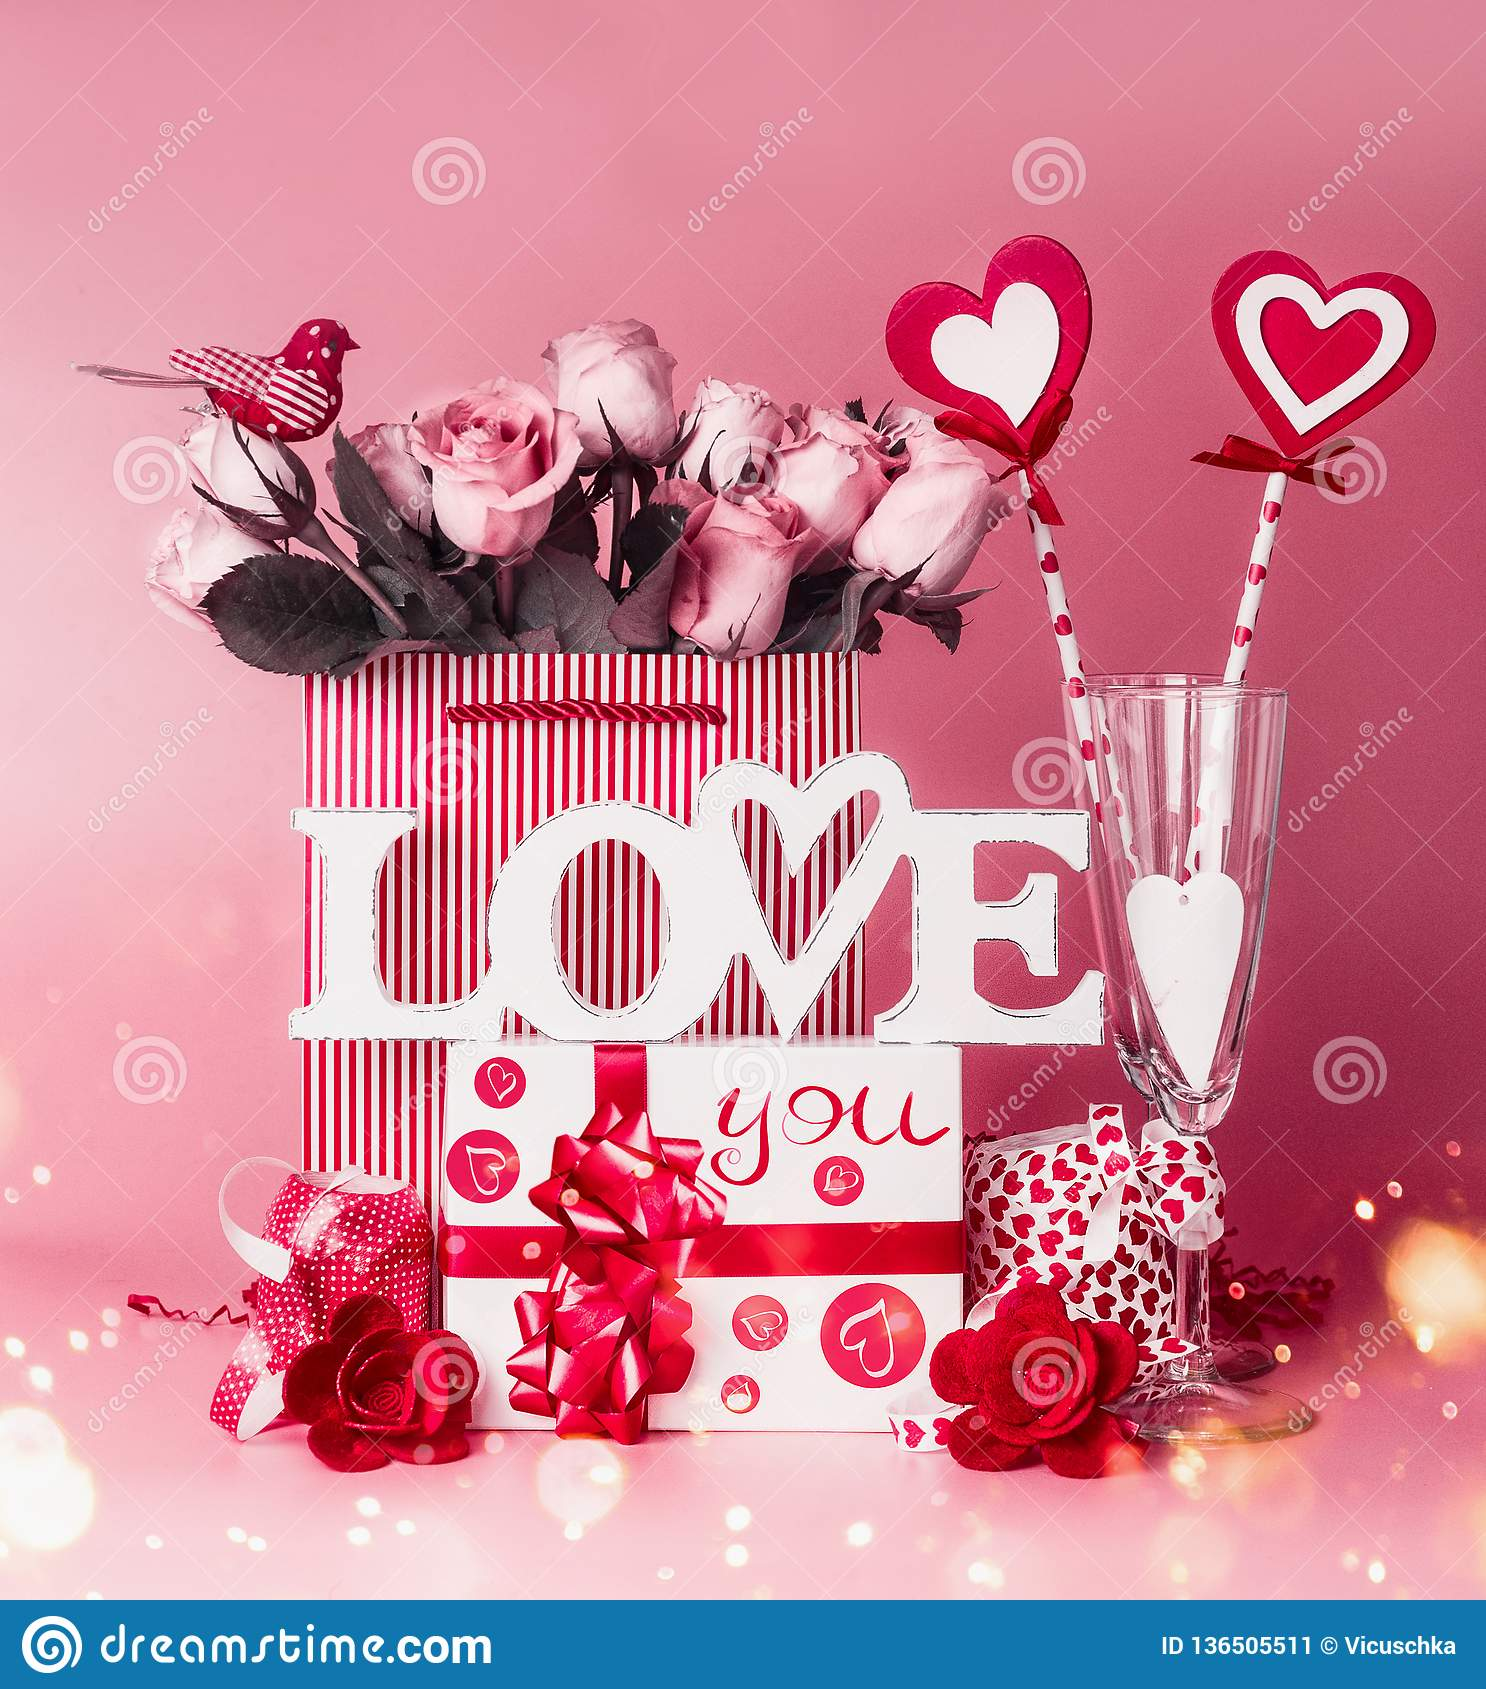 Lovely Romantic Composition For Valentines Day Love You Message